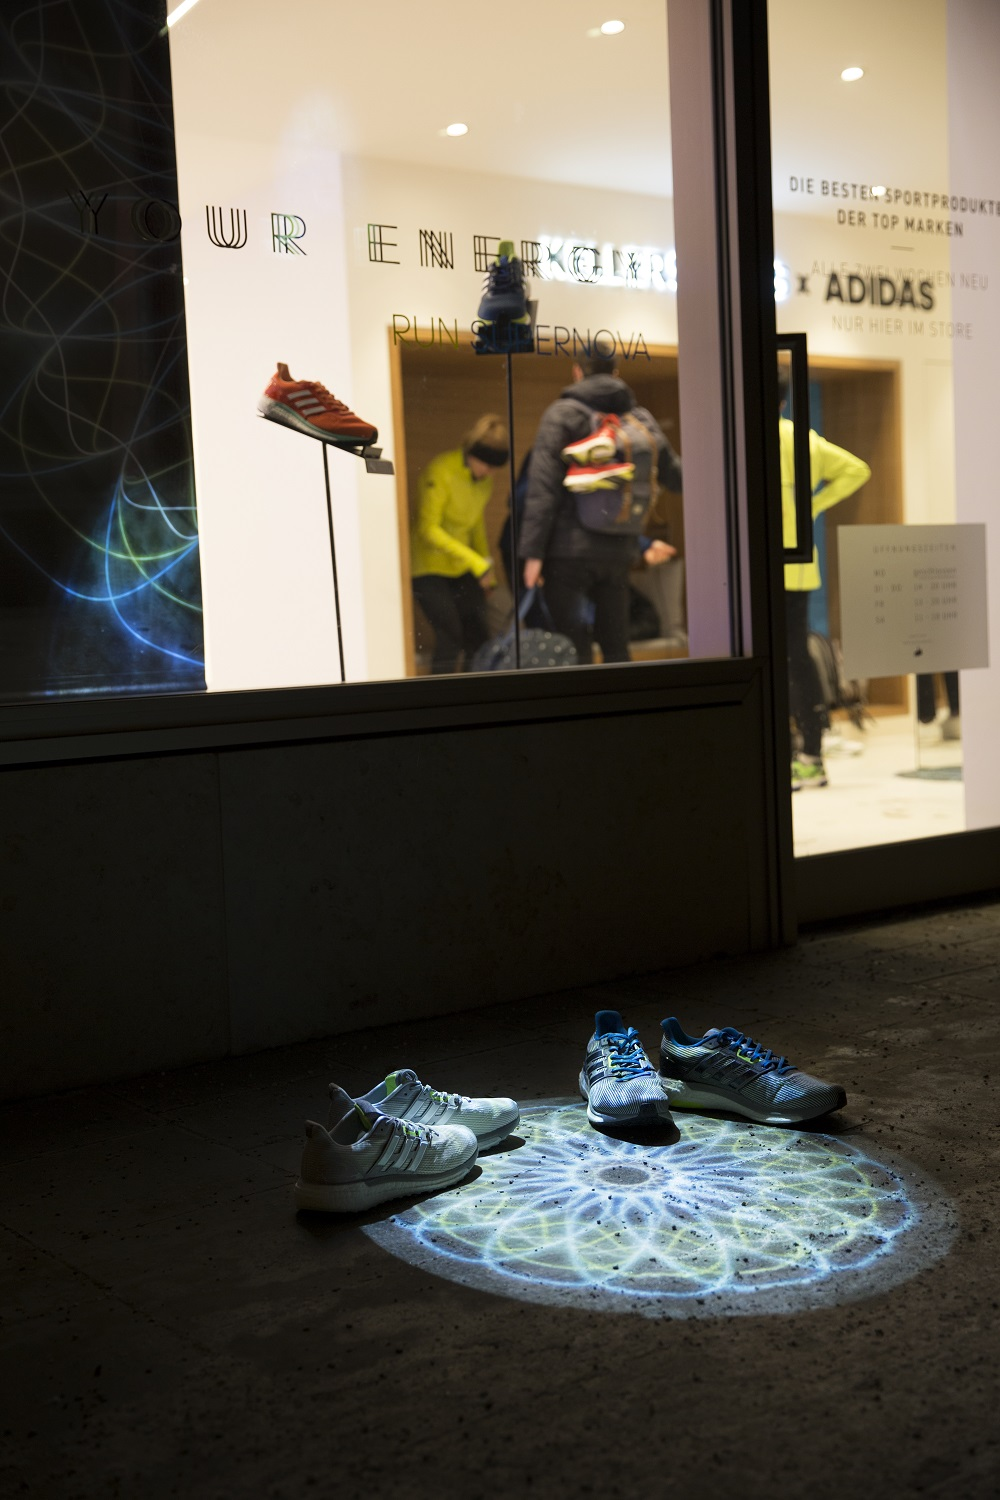 ADIDAS SUPERNOVA - THE PRODUCTS AT THE KELLER SPORTS STORE